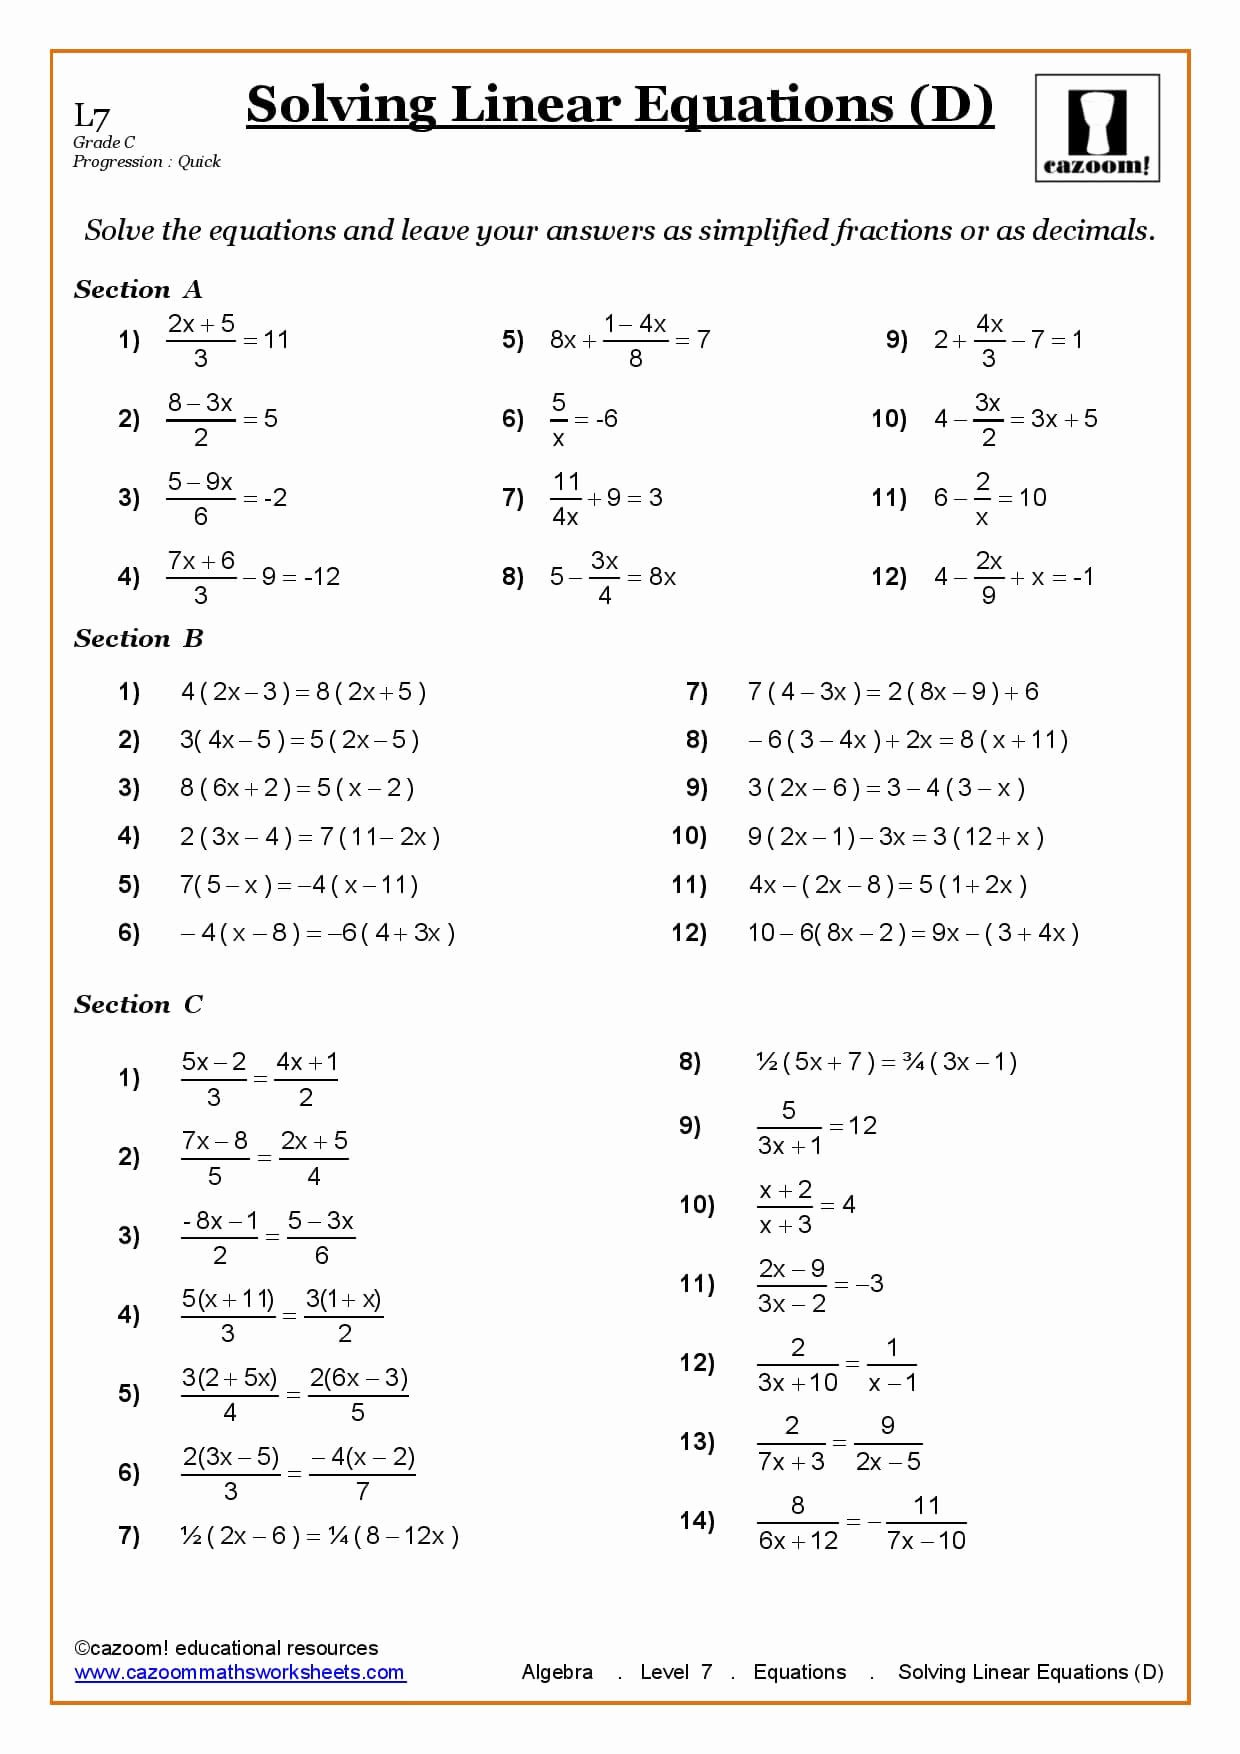 Linear Equation Worksheet Pdf Fresh solving Linear Equations